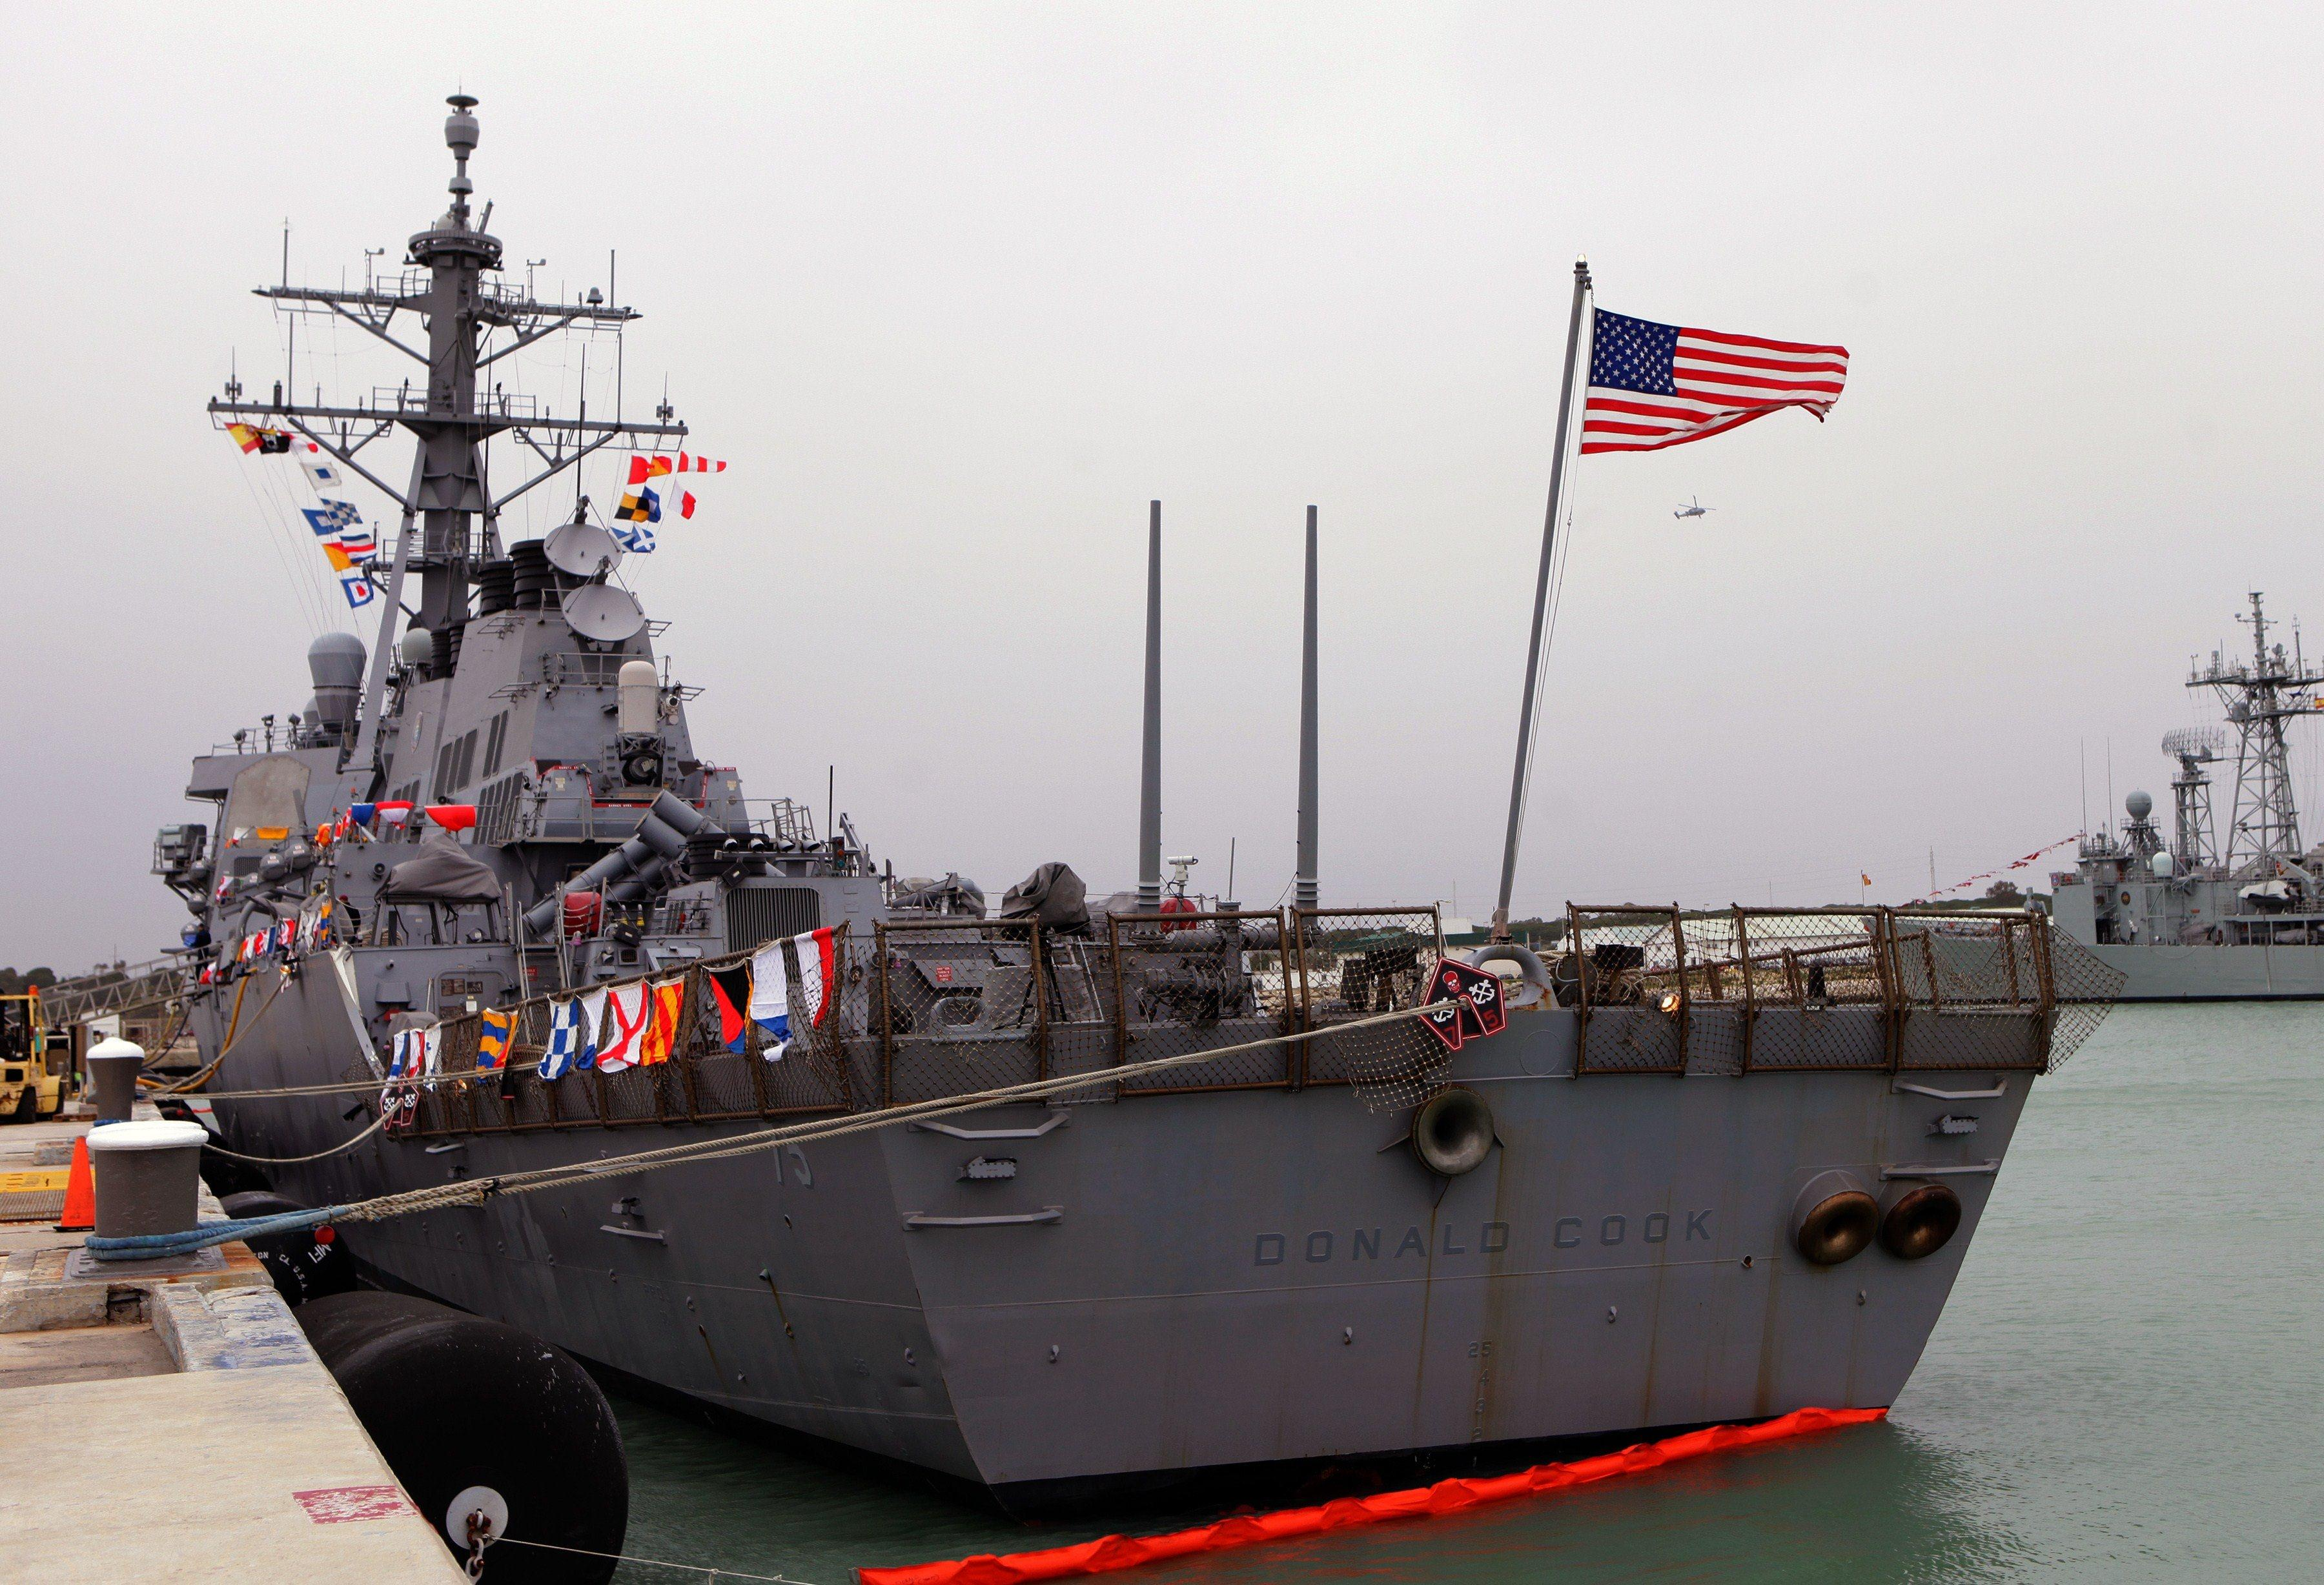 US Navy has sent destroyer Donald Cook in Black Sea to support Ukraine